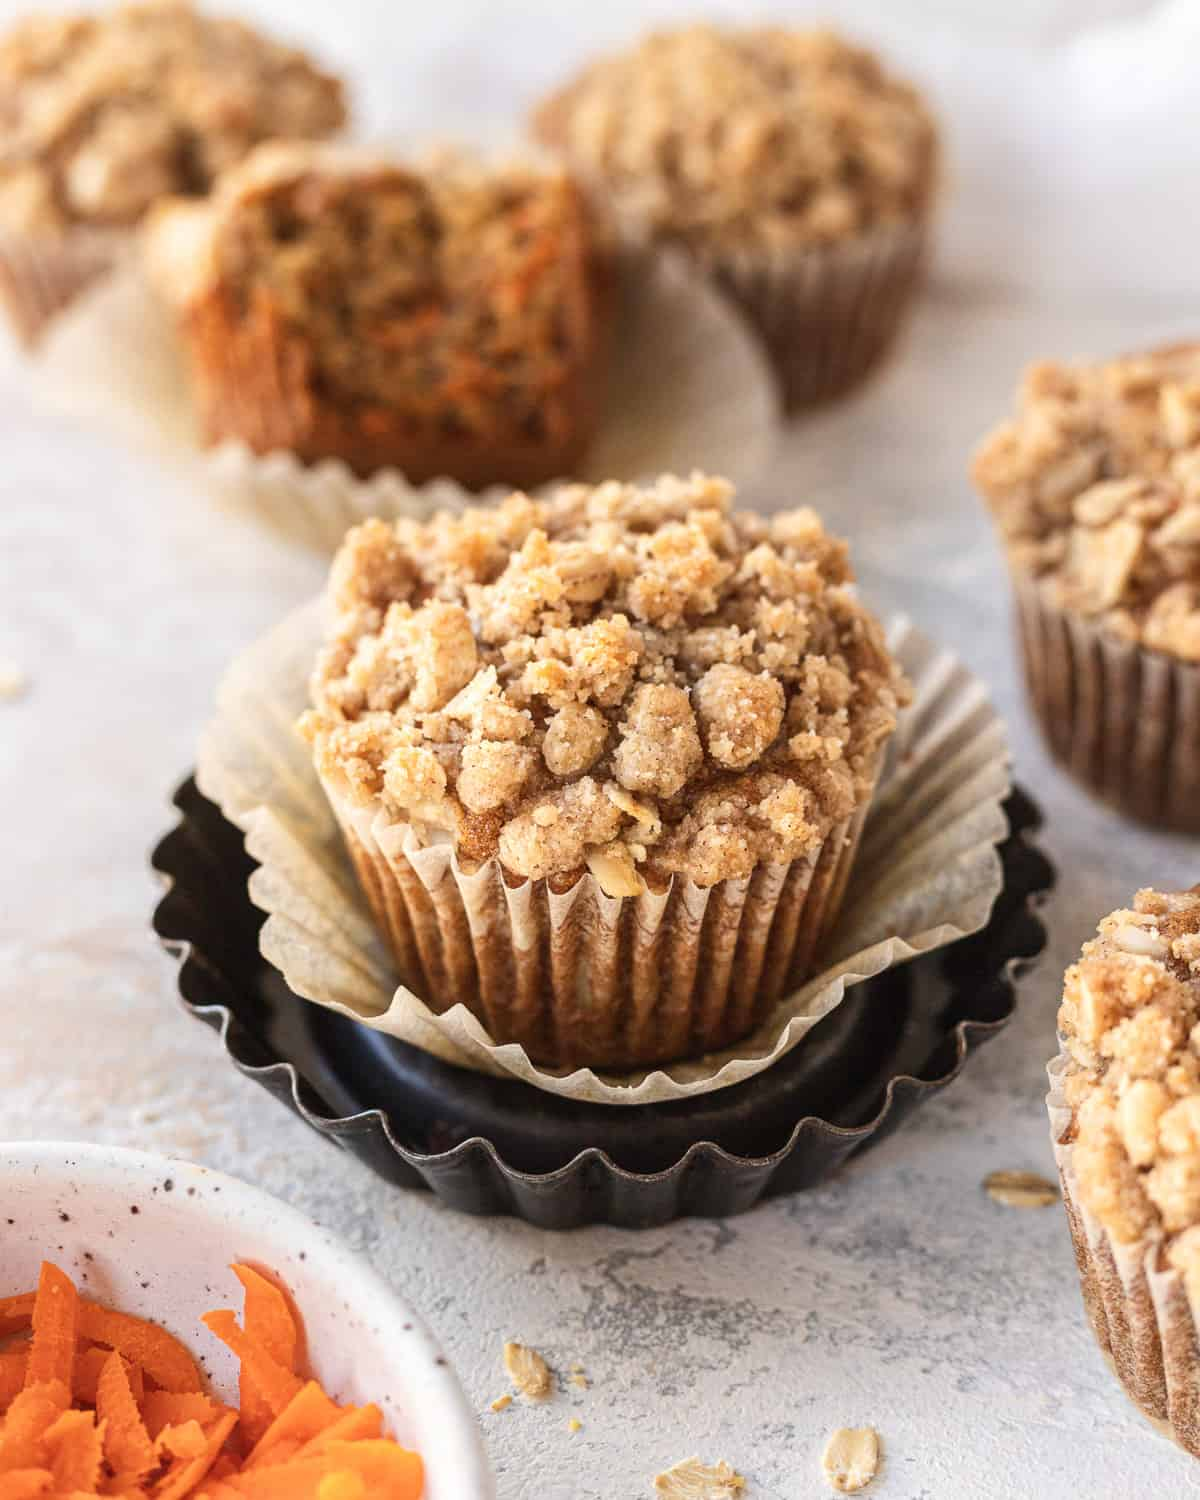 banana carrot muffin sitting in a little dish with muffins and a bowl of carrots surrounding it